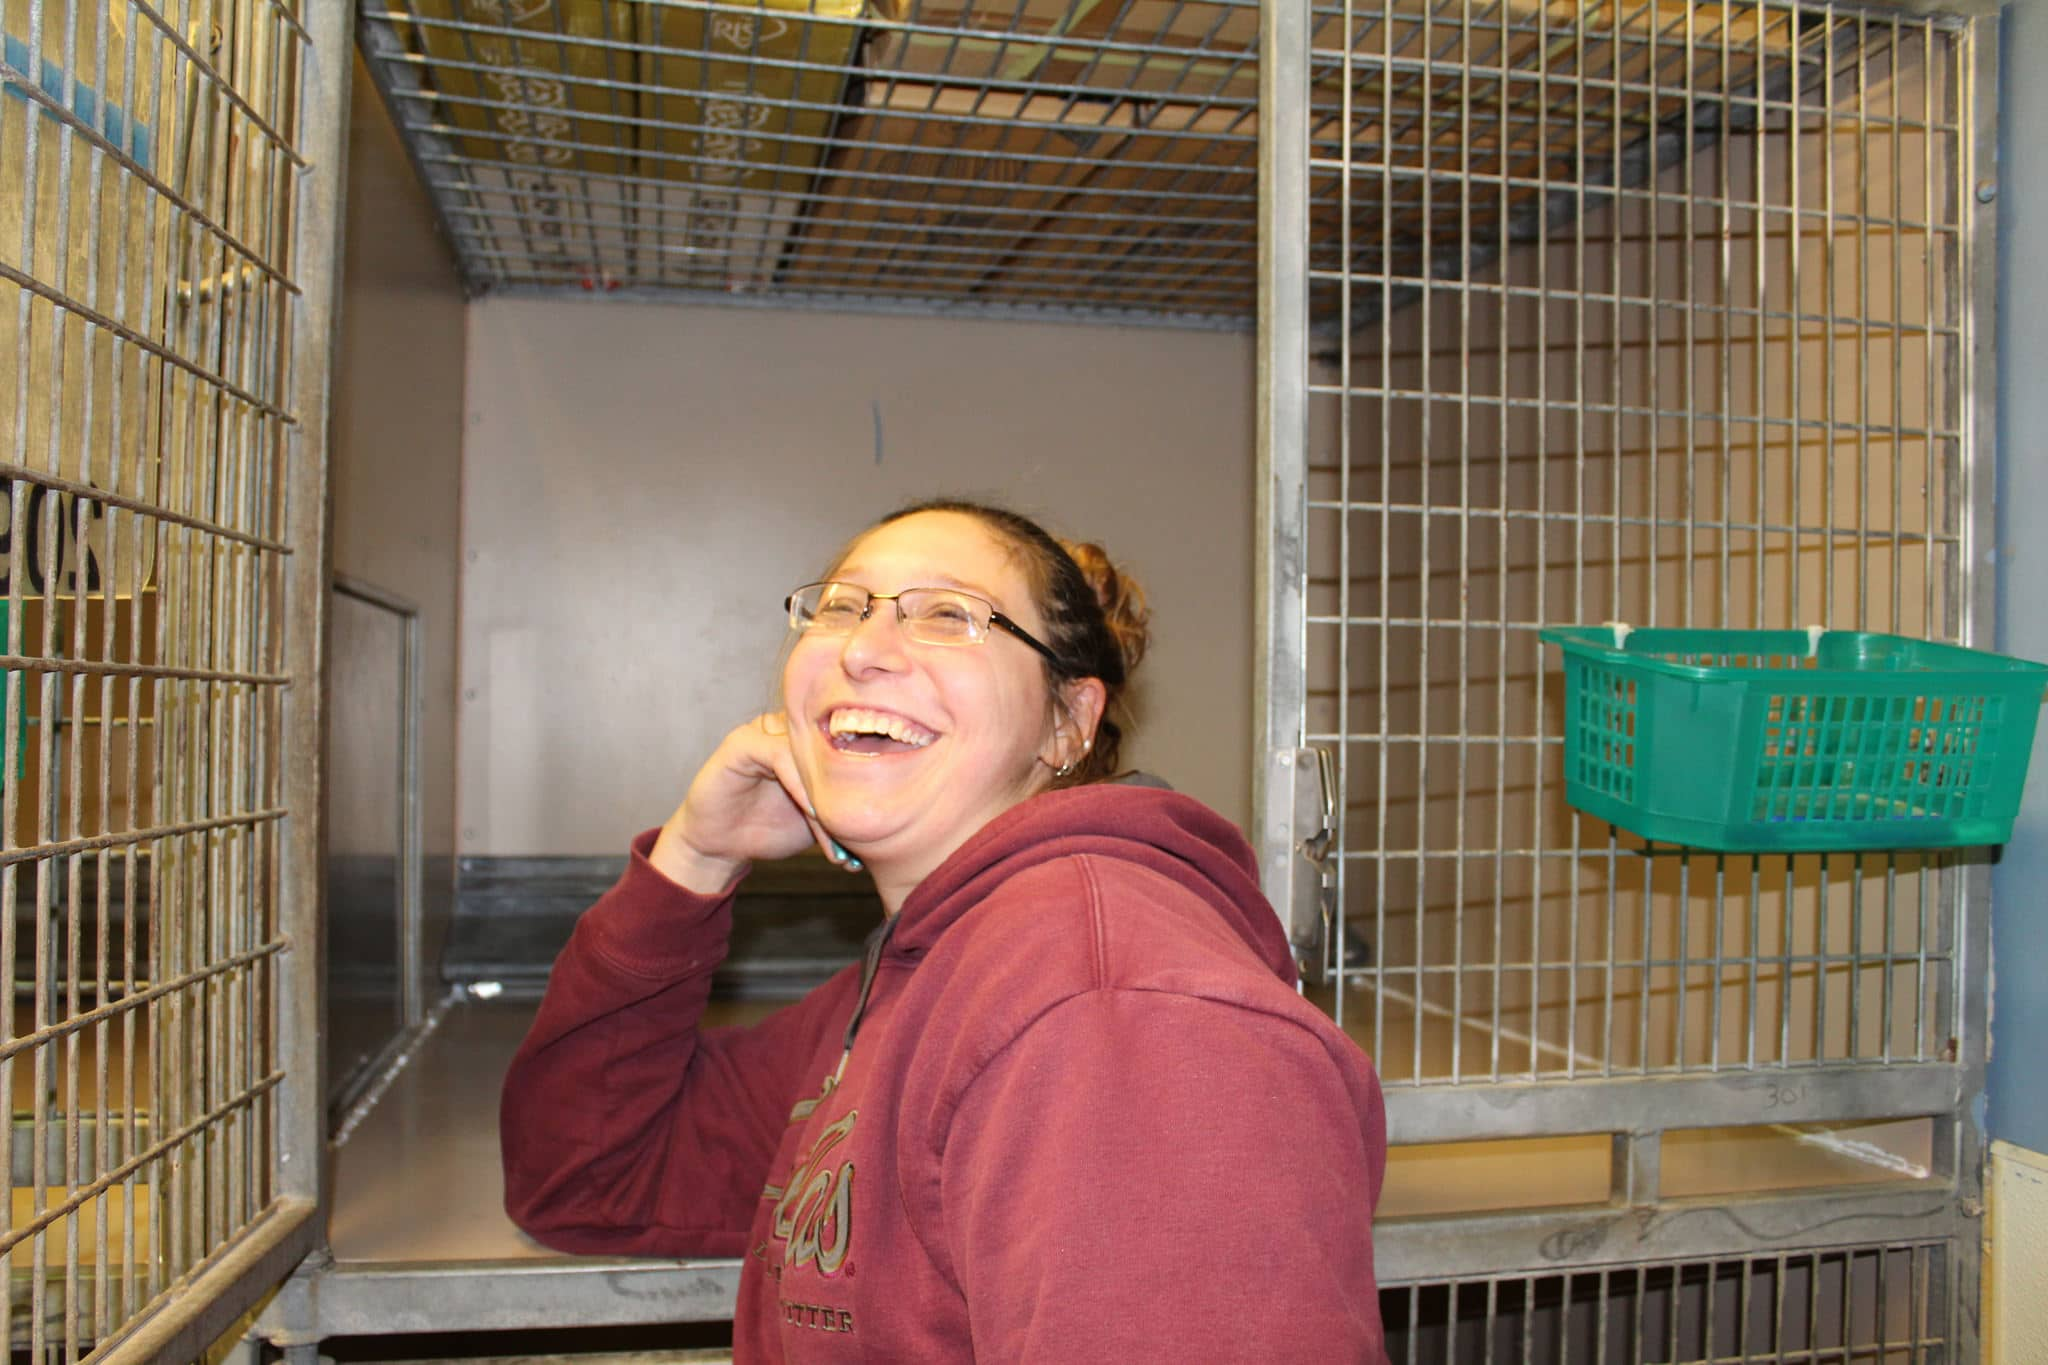 image of woman standing in front of a kennel